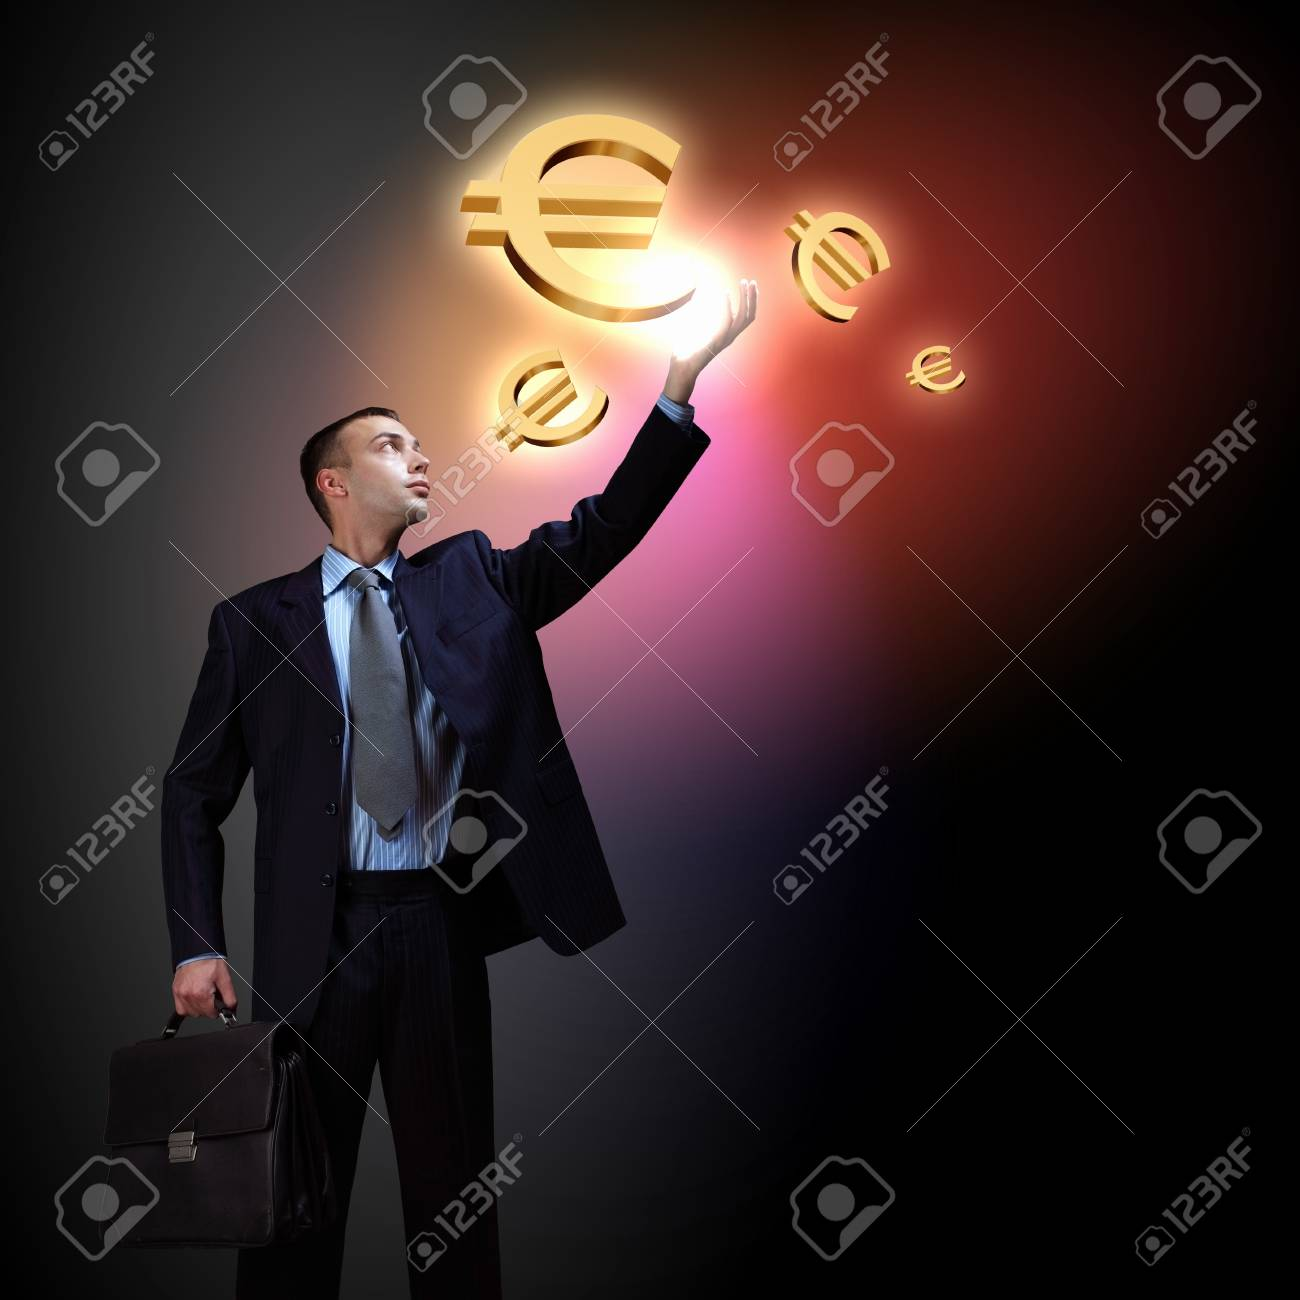 Modern people doing business, young businessman with money symbols Stock Photo - 16960202